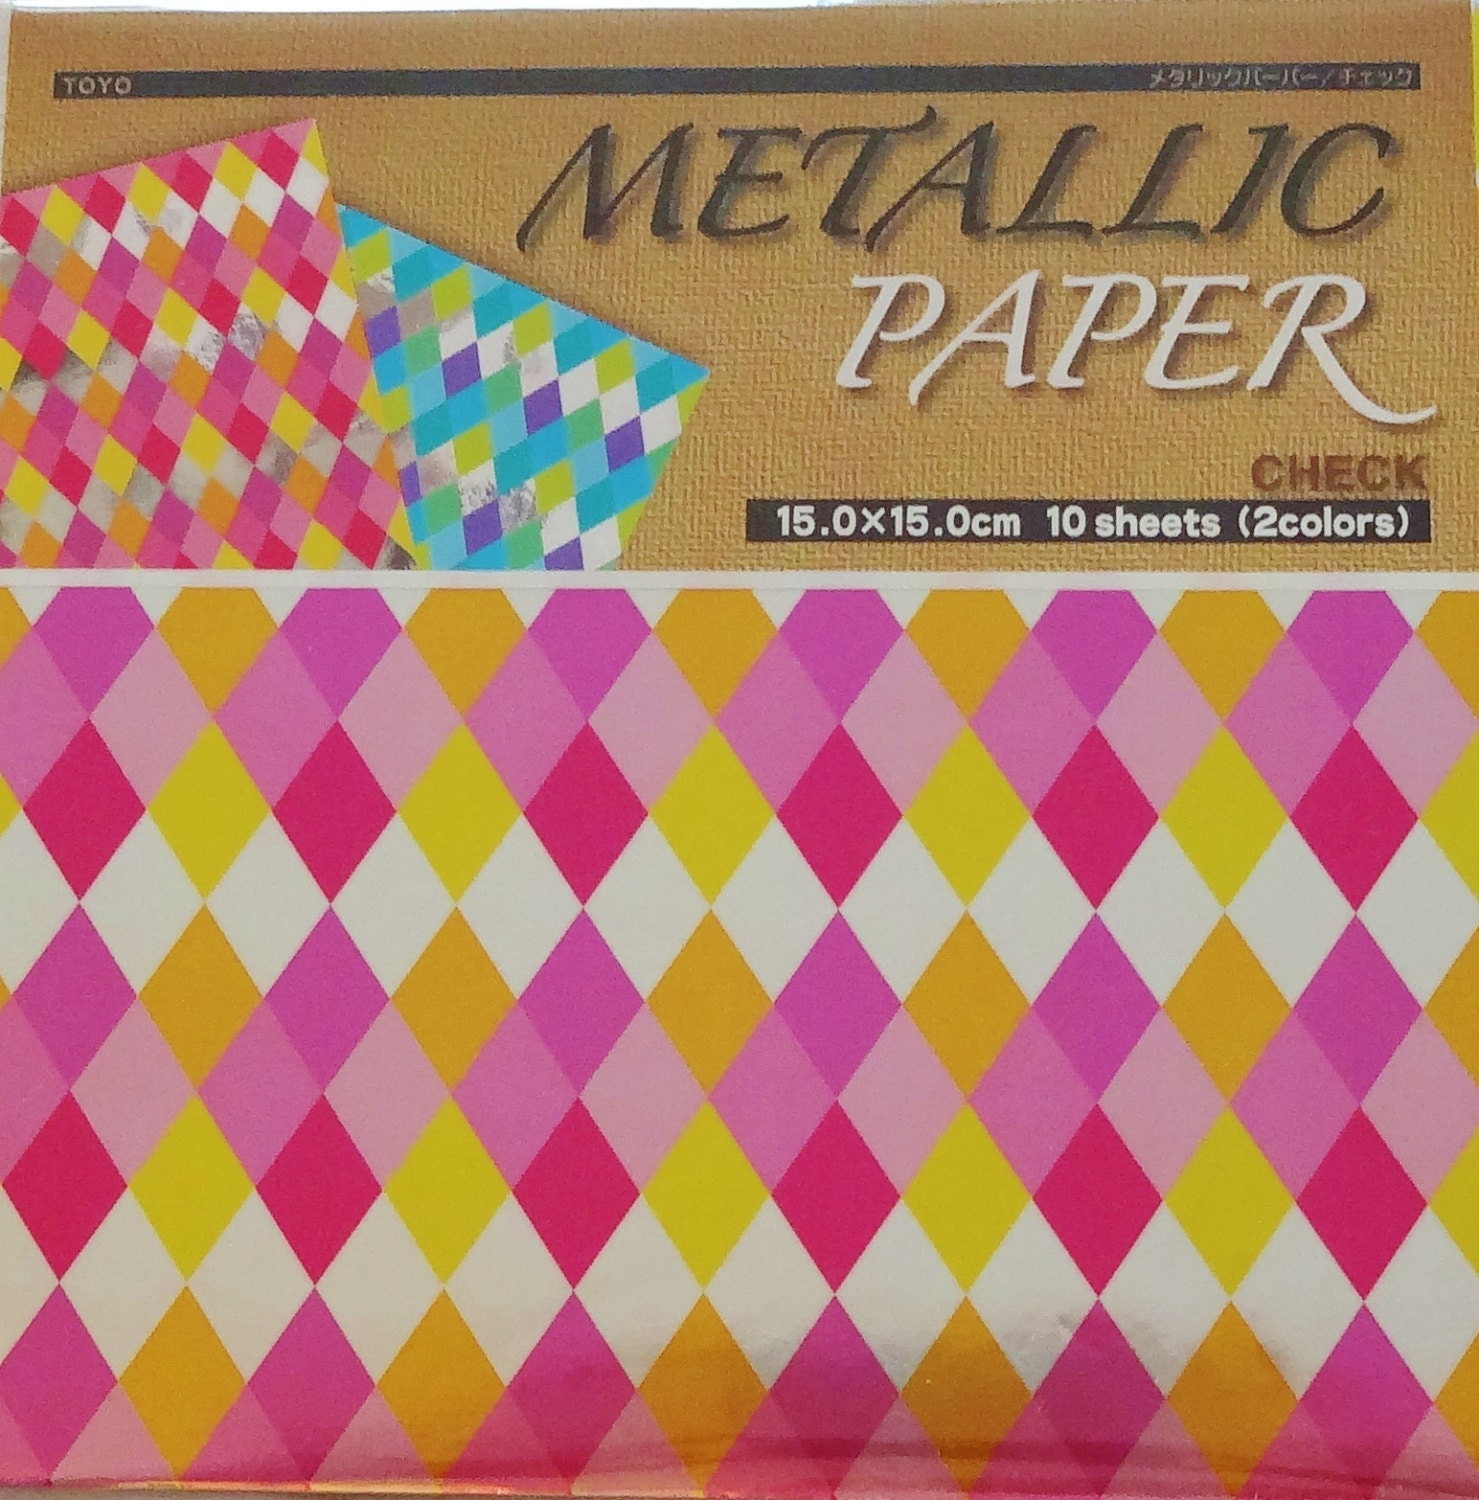 Origami paper metallic origami paper with diamond shapes zoom jeuxipadfo Images